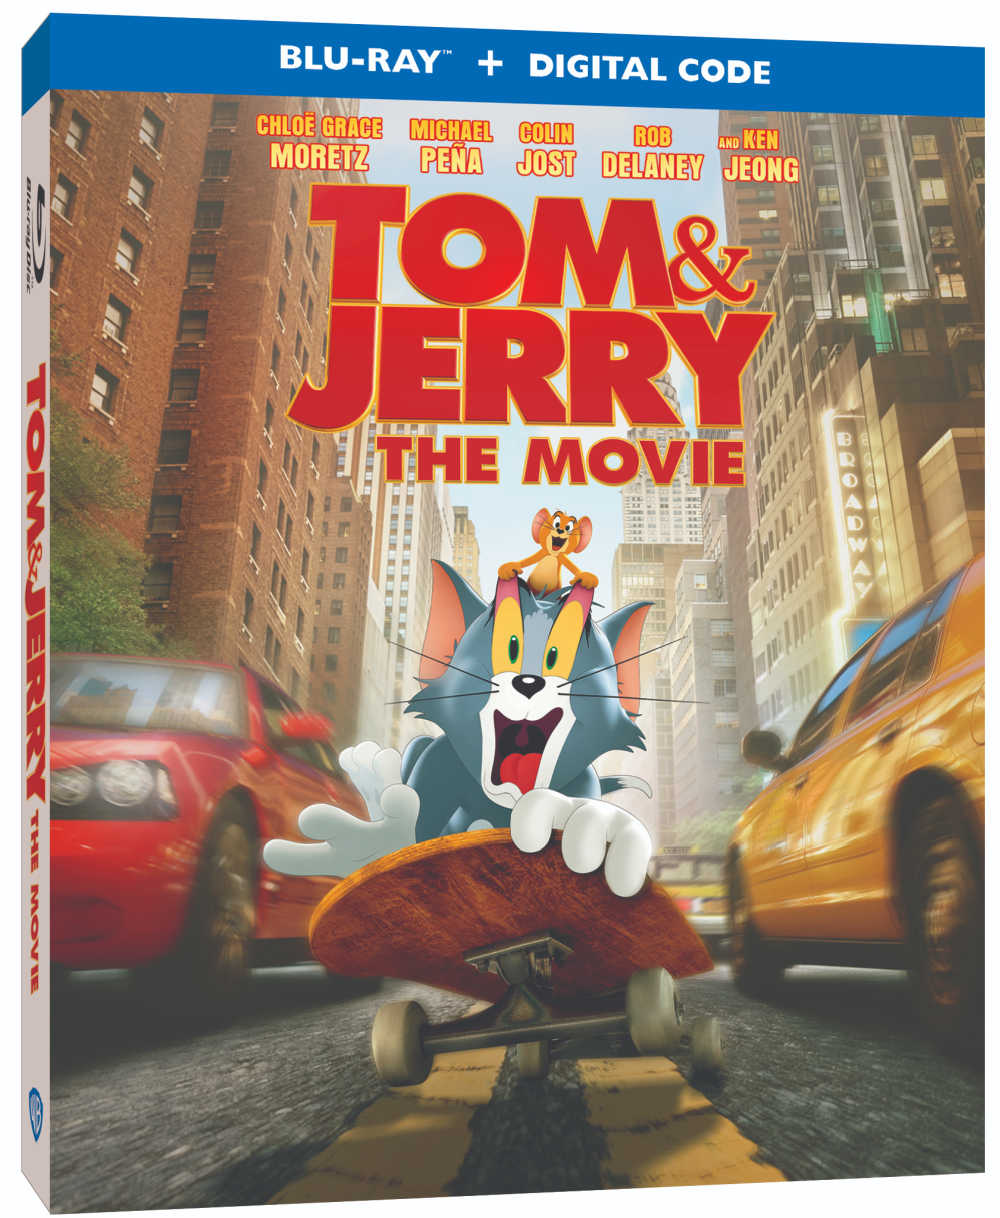 The classic cartoon cat and mouse duo are here for brand new fun, so add the Tom and Jerry blu-ray to your home collection.